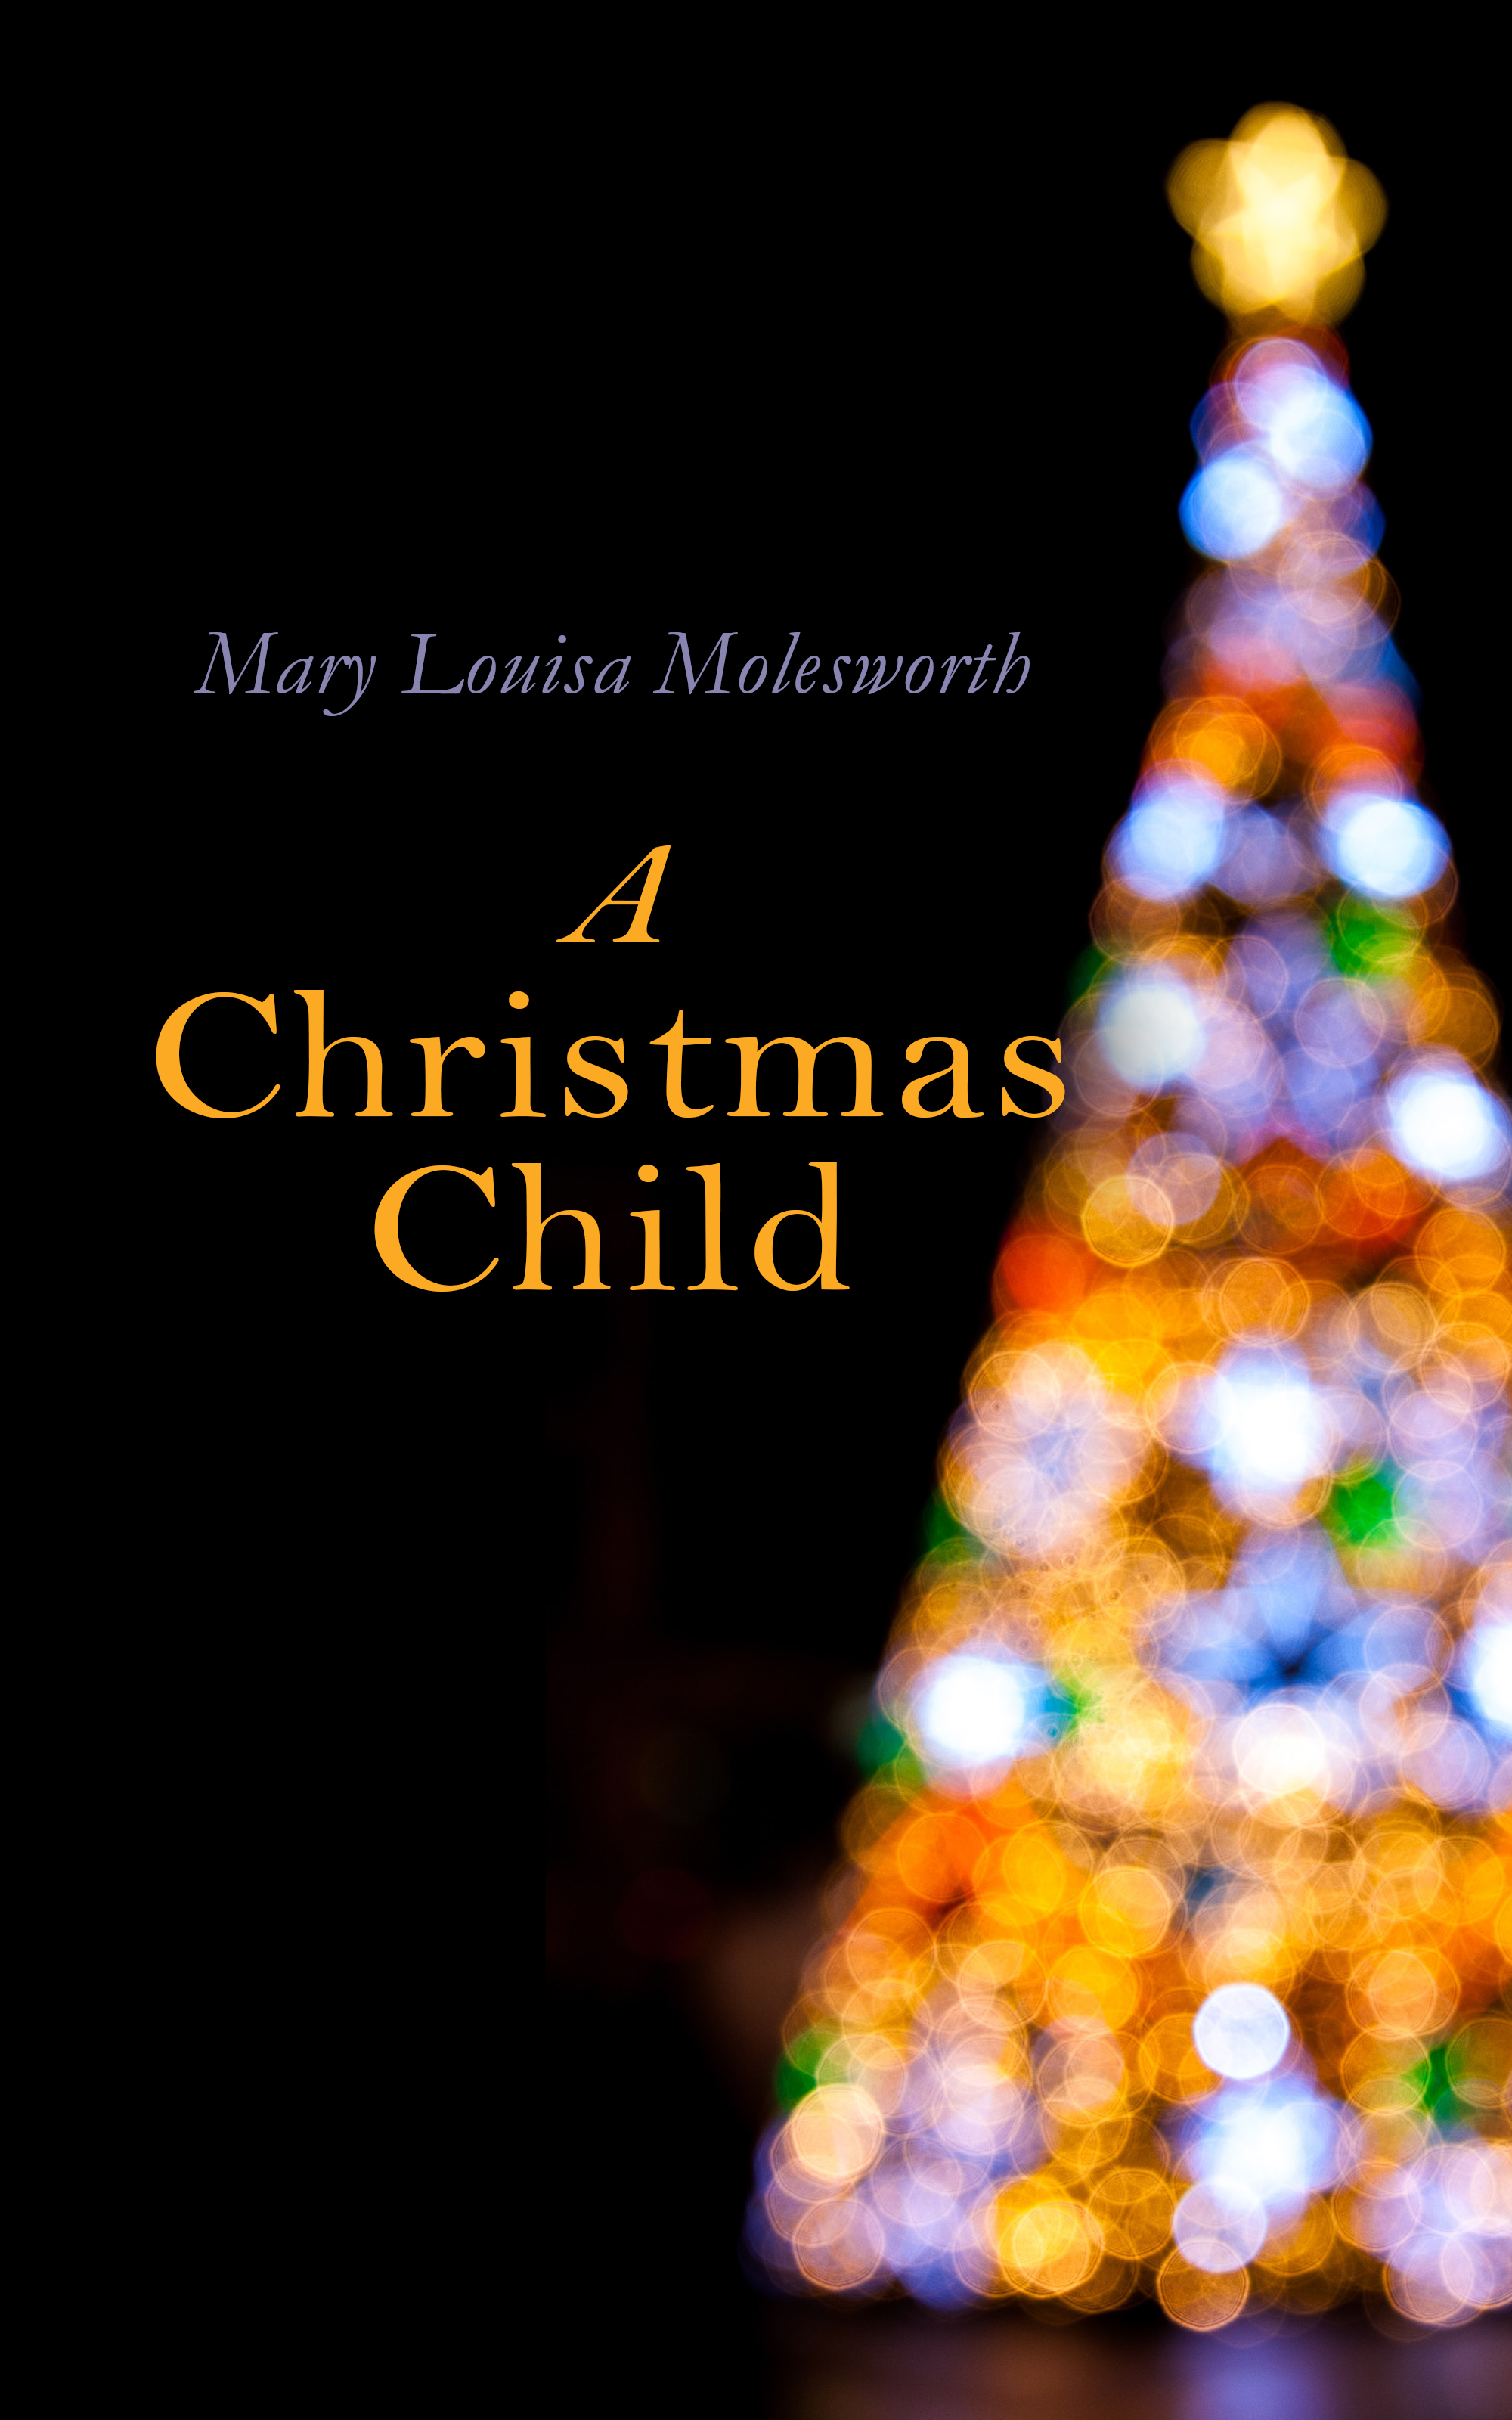 Mary Louisa Molesworth A Christmas Child mary sheldon child s day out